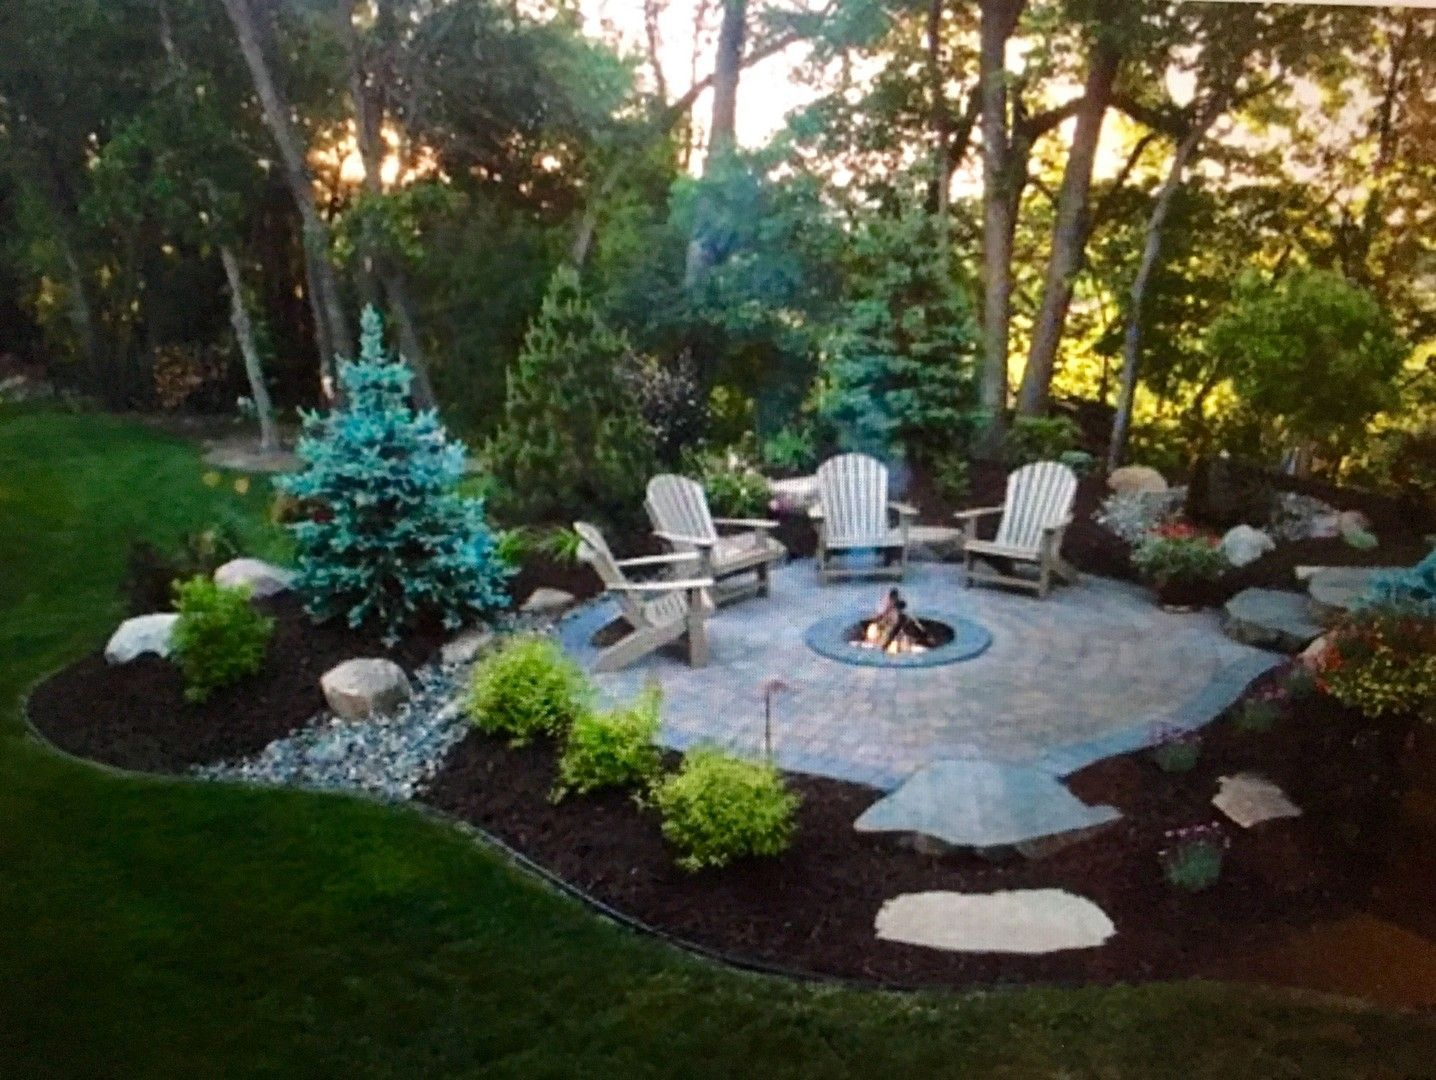 43 DIY outdoor fire pits are just what your backyard needs!